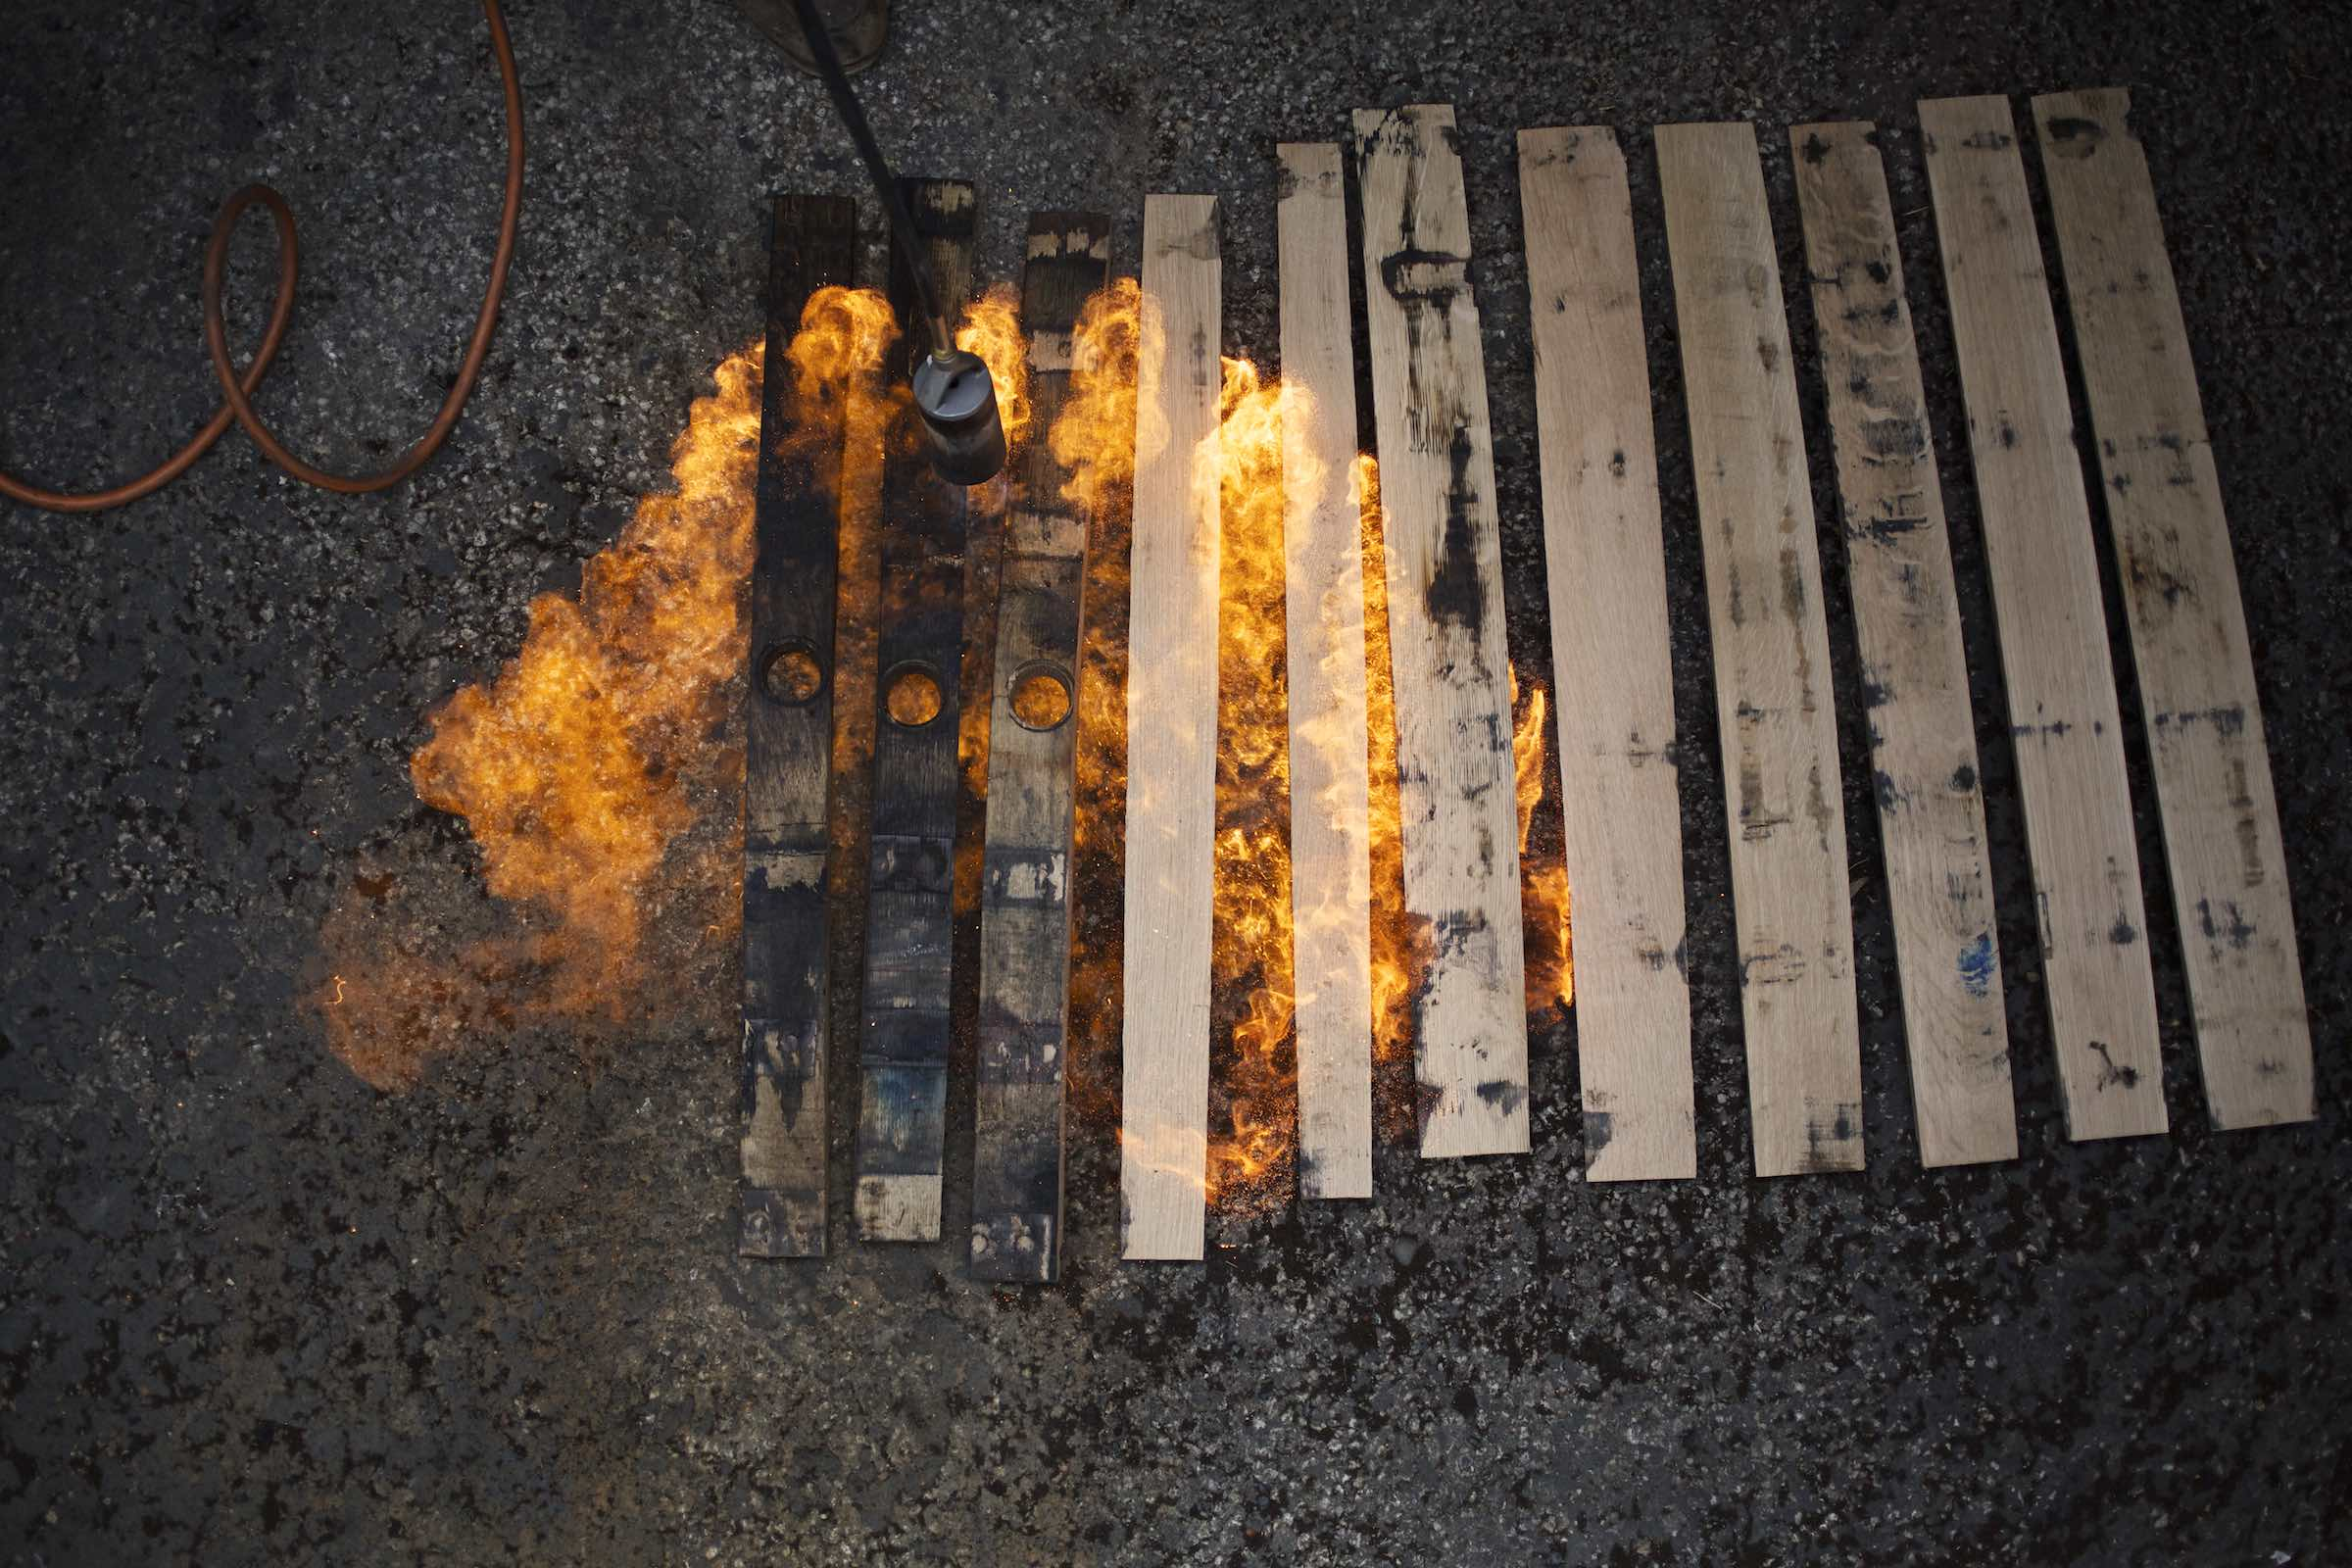 Jody Horton Photography - Flames burning wood planks placed on asphalt.